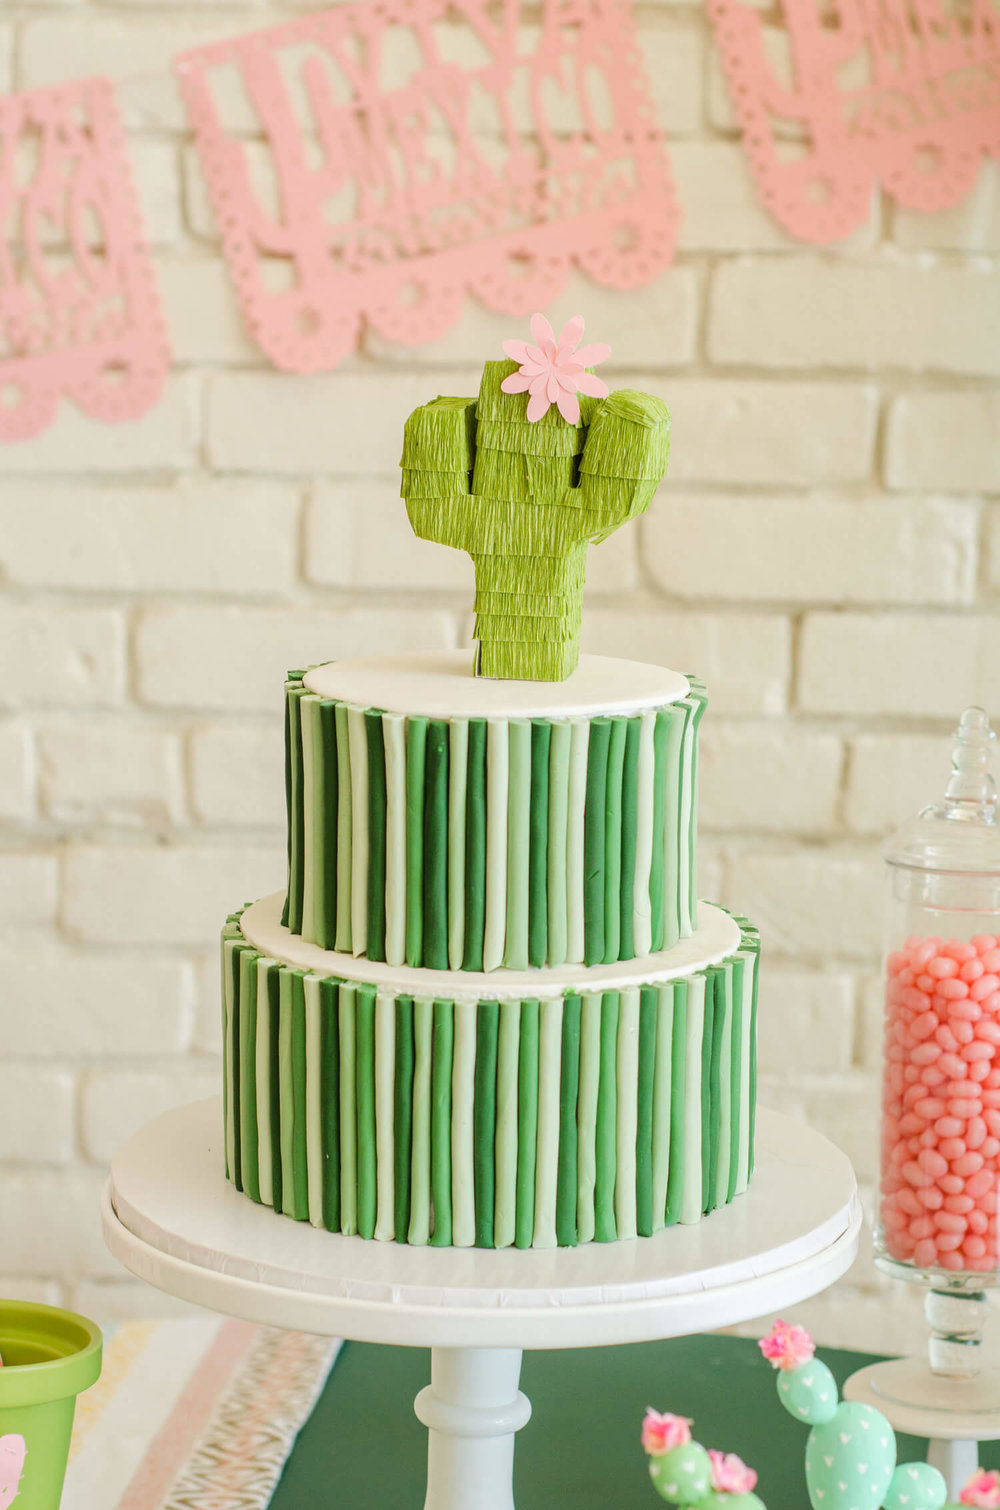 Cinco de Mayo party ideas / Cinco de Mayo desserts / Cinco de Mayo Cake idea / Cactus cake idea / Cactus Cake topper idea / Cinco de Mayo dessert table / Southwestern party ideas / Styled by Carolina from MINT Event Design / www.minteventdesign.com